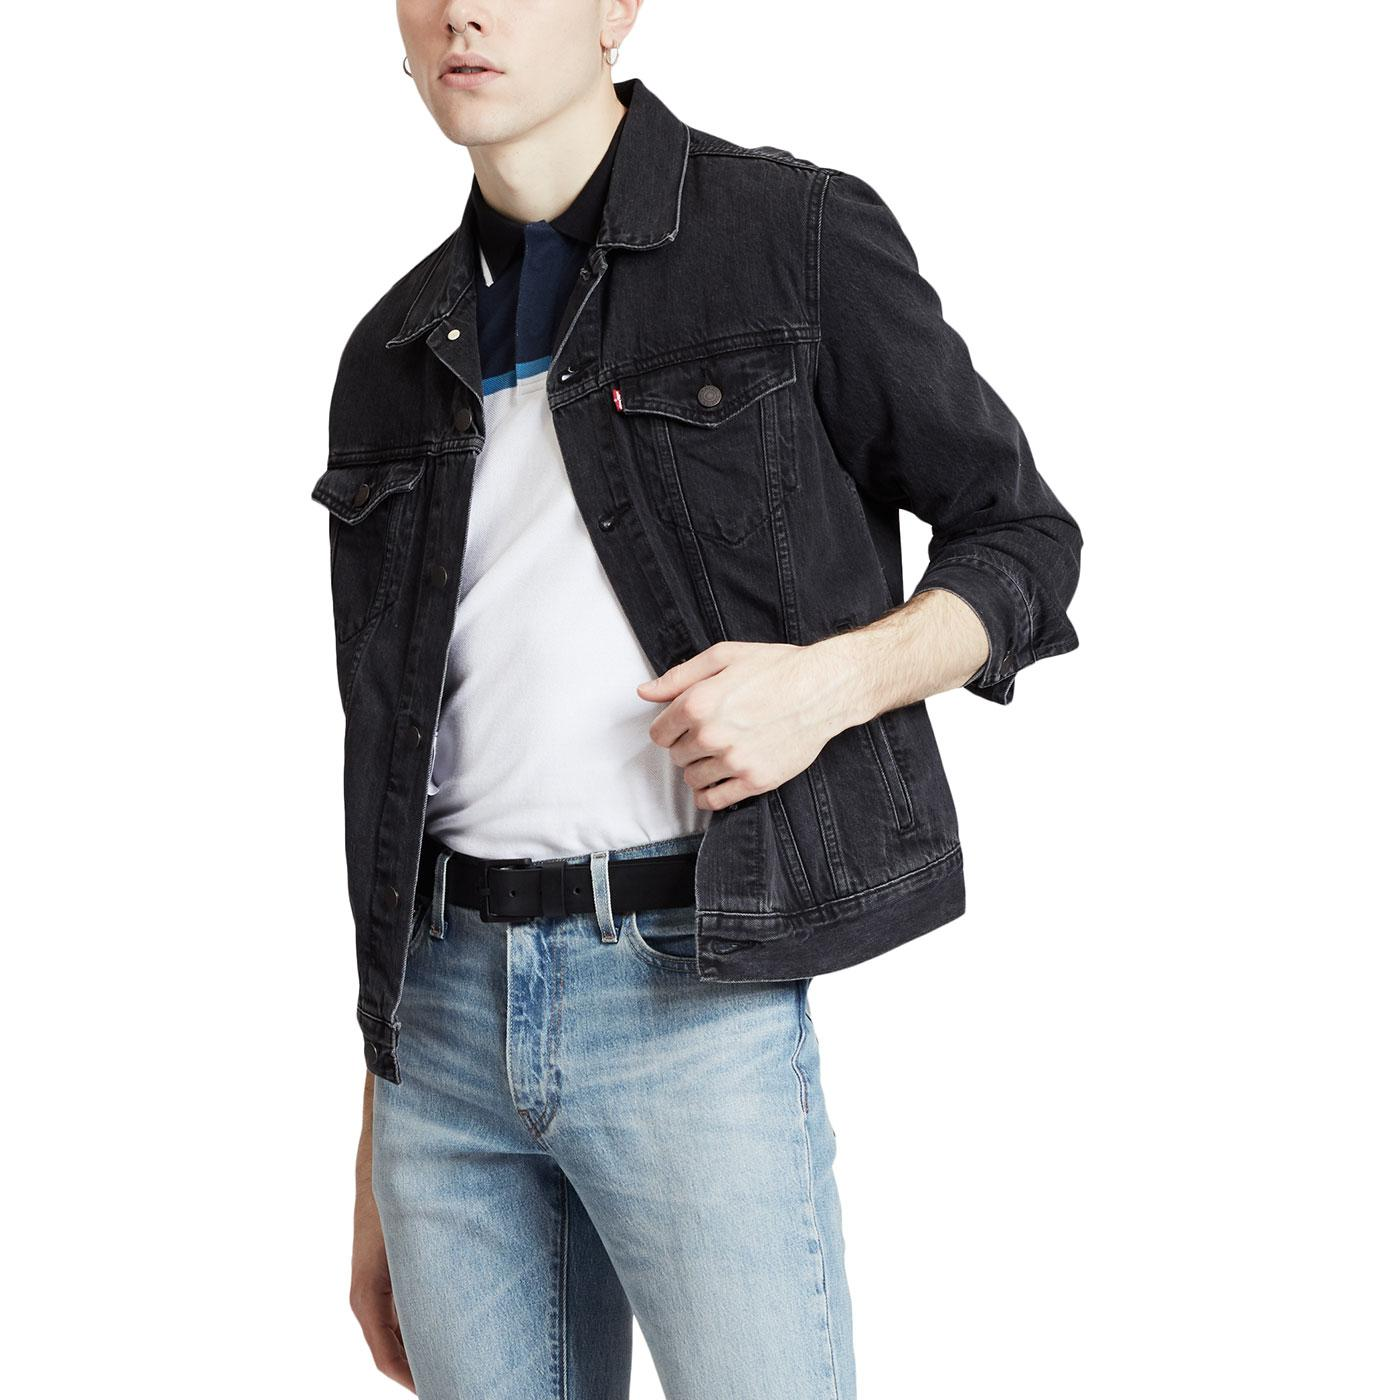 The Trucker LEVI'S Retro Mod Denim Jacket LICORICE